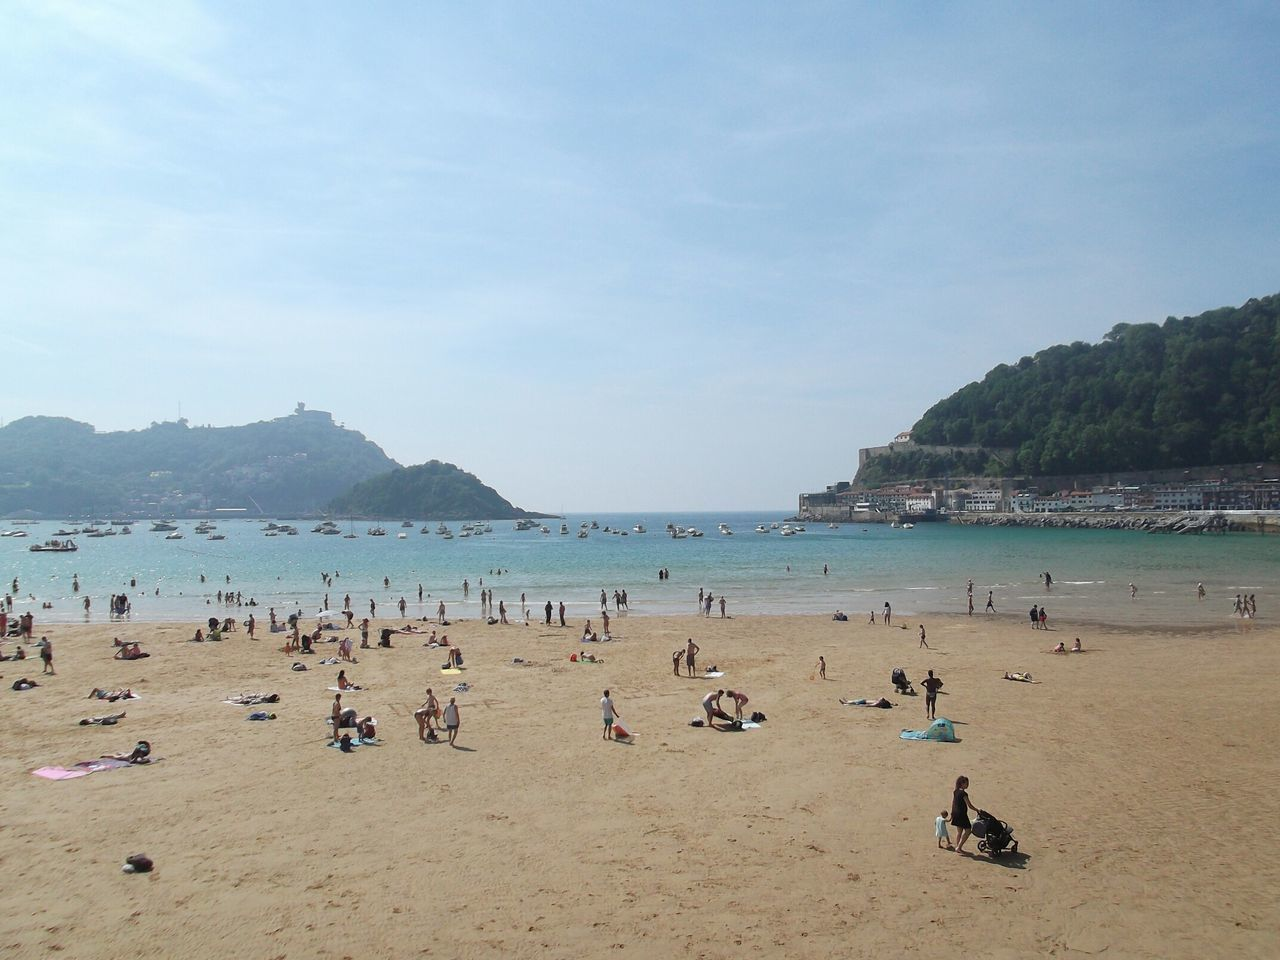 Beach Summer Nature Vacations Beauty In Nature San Sebastian Beach Monte Urgull Beach Holiday San Sebastián, Spain Sunny Beauty In Nature Relaxation Sky Tourist Resort Tropical Climate City Goodday✌️ Beachphotography